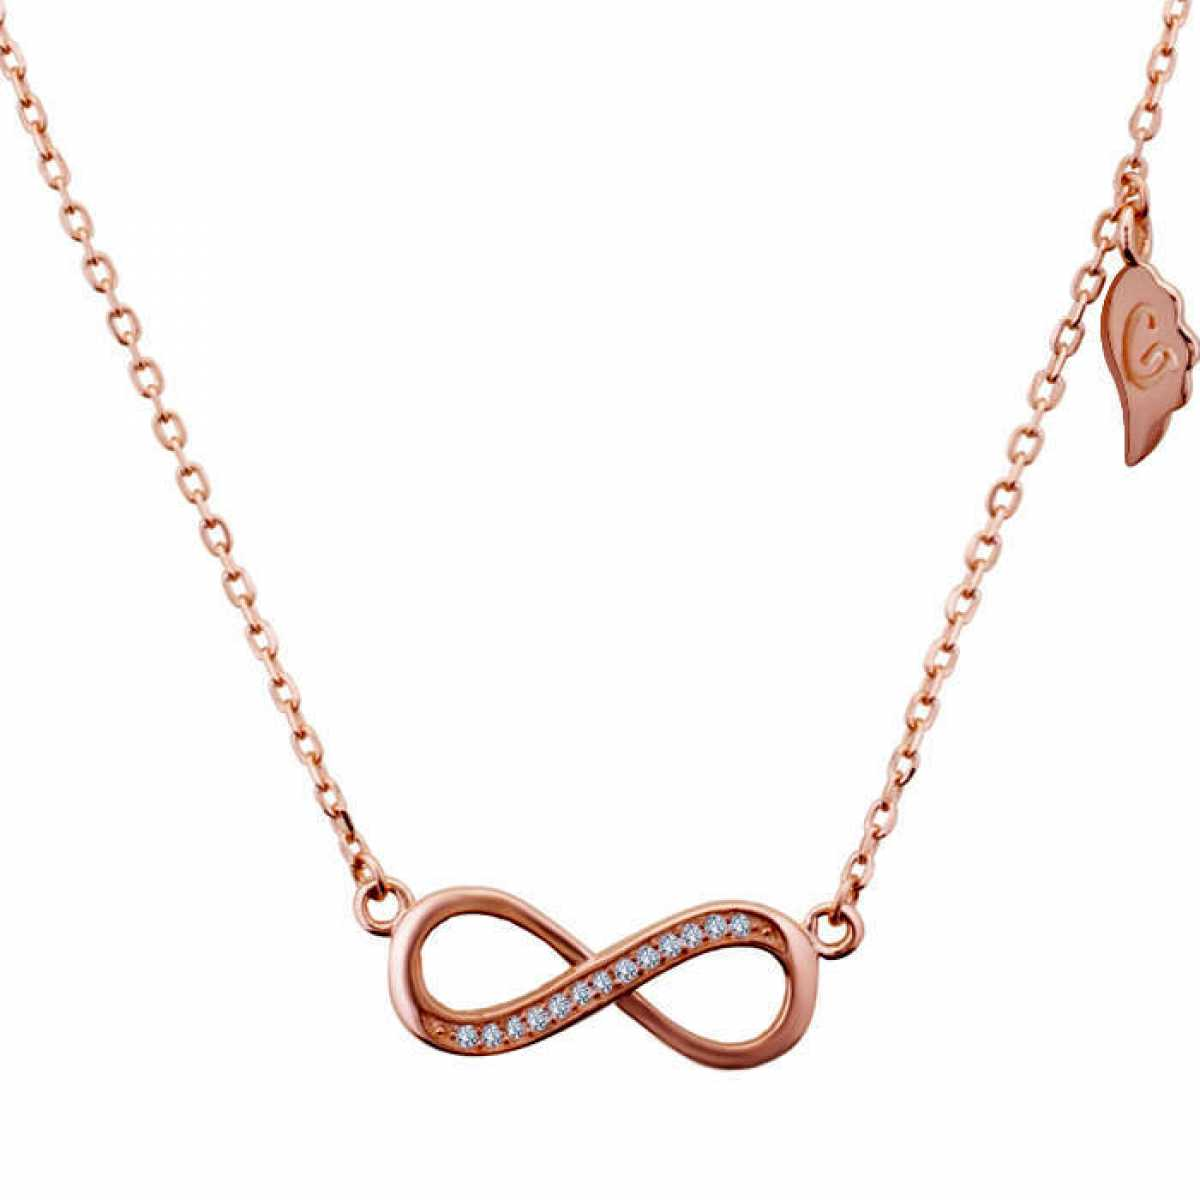 Hanging Eight Shape Rose Gold Chain